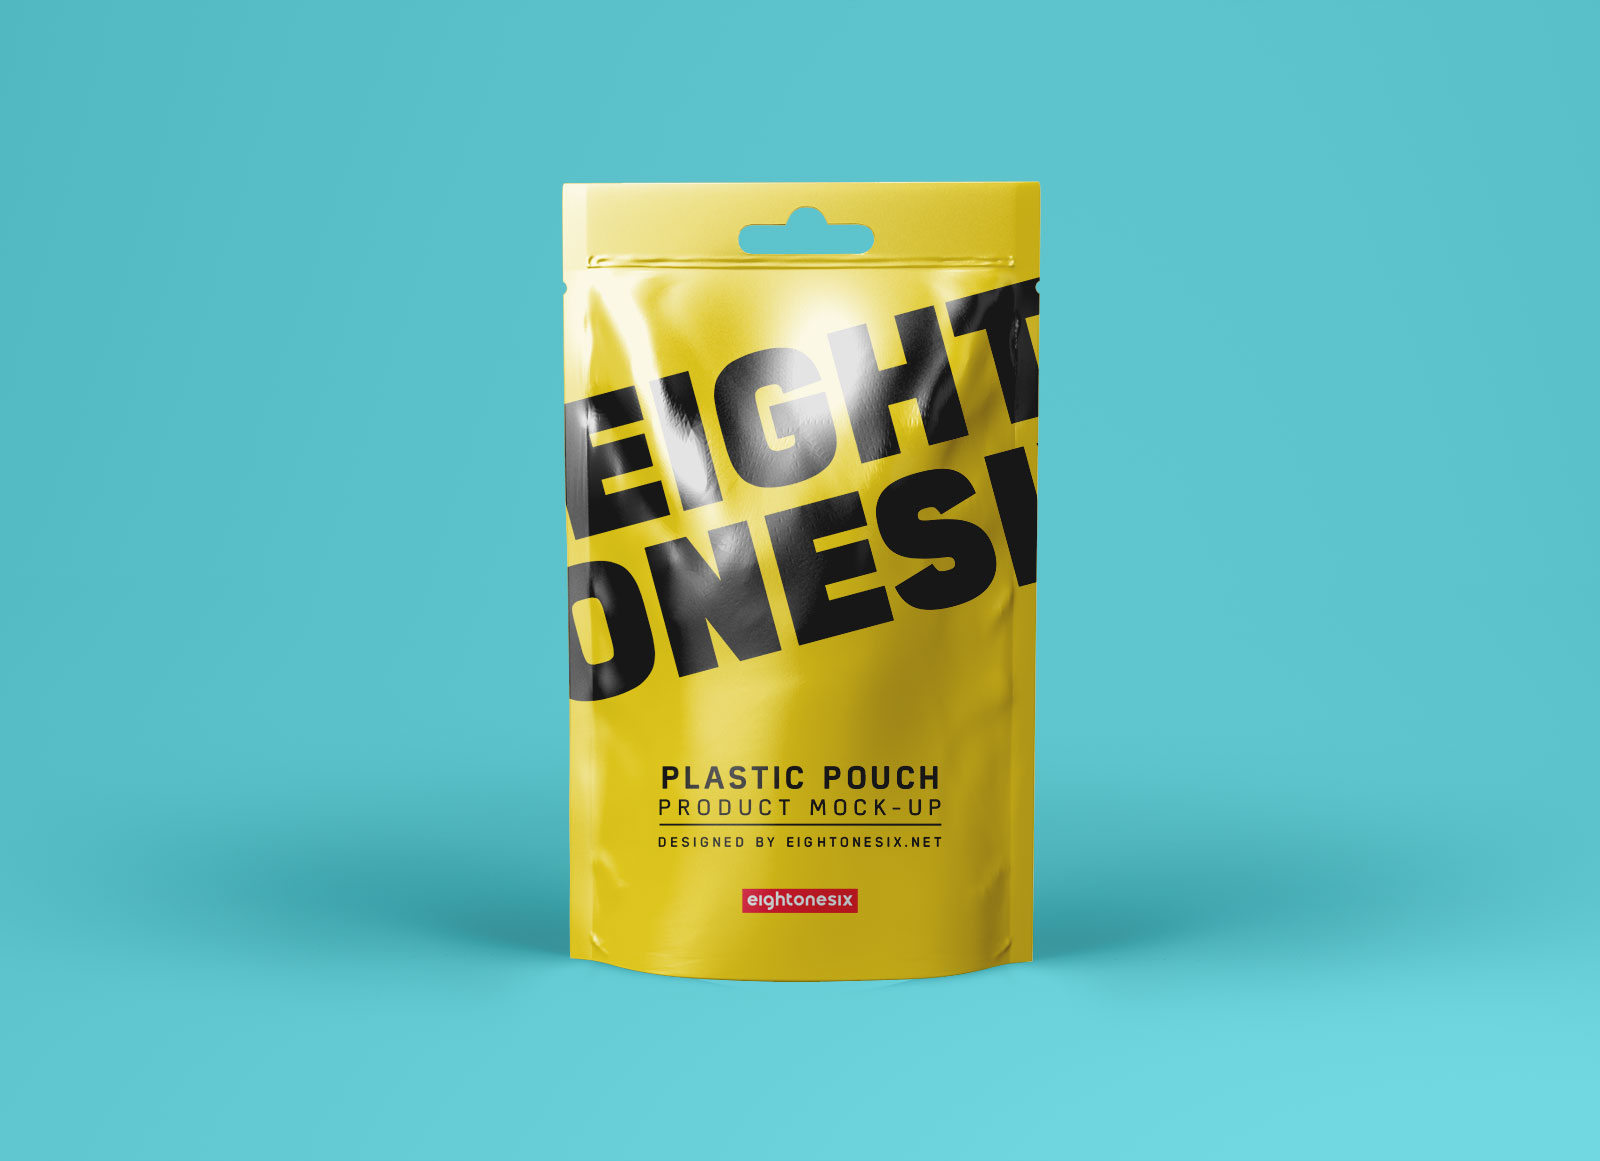 Free-Realistic-Standing-Plastic-Pouch-Packaging-Mockup-PSD